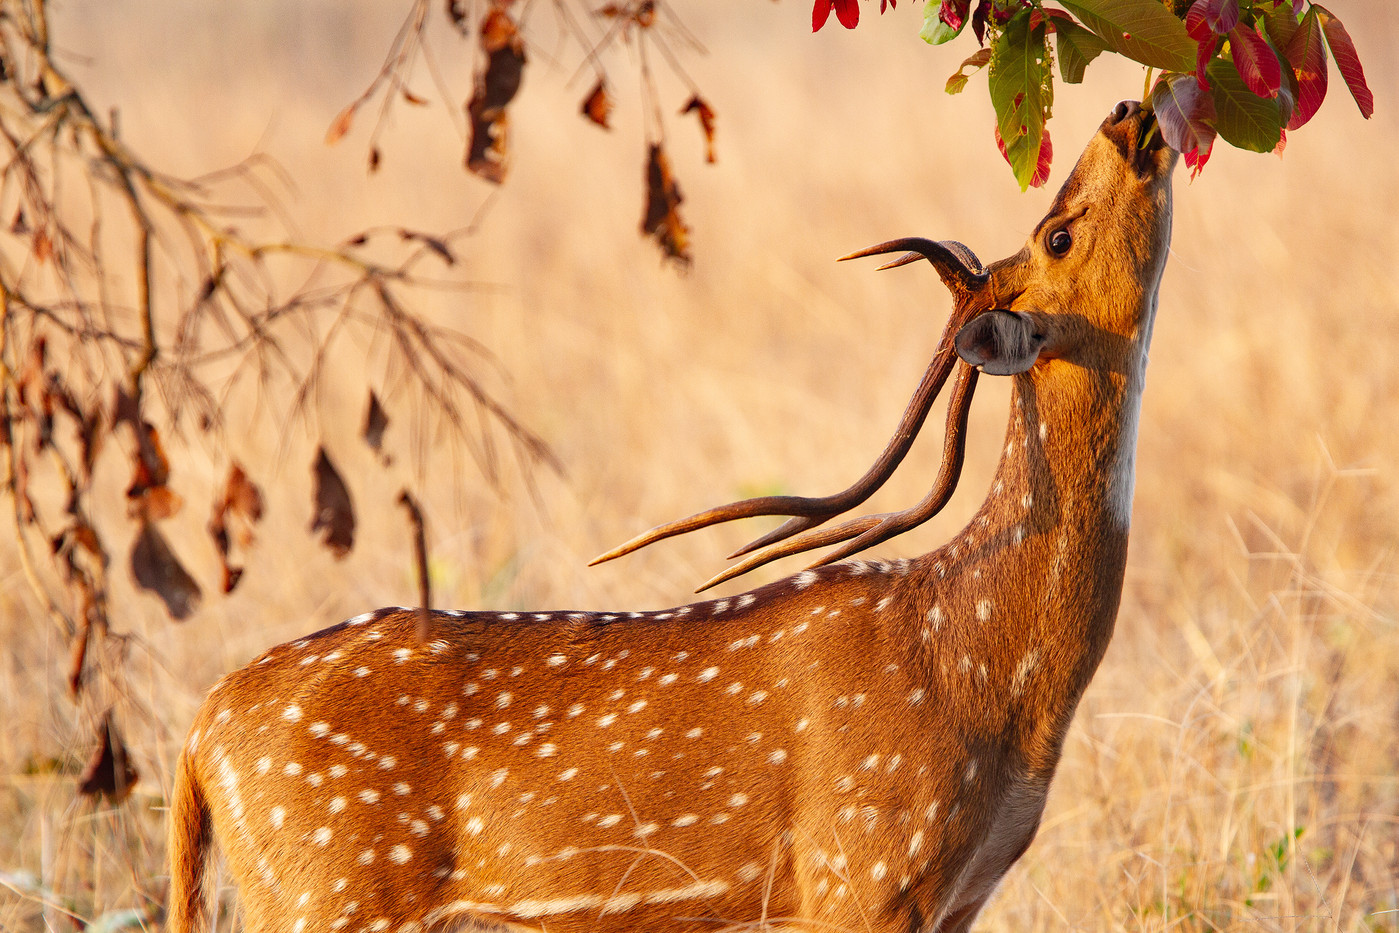 Spotted Deer in Kanha NP, India